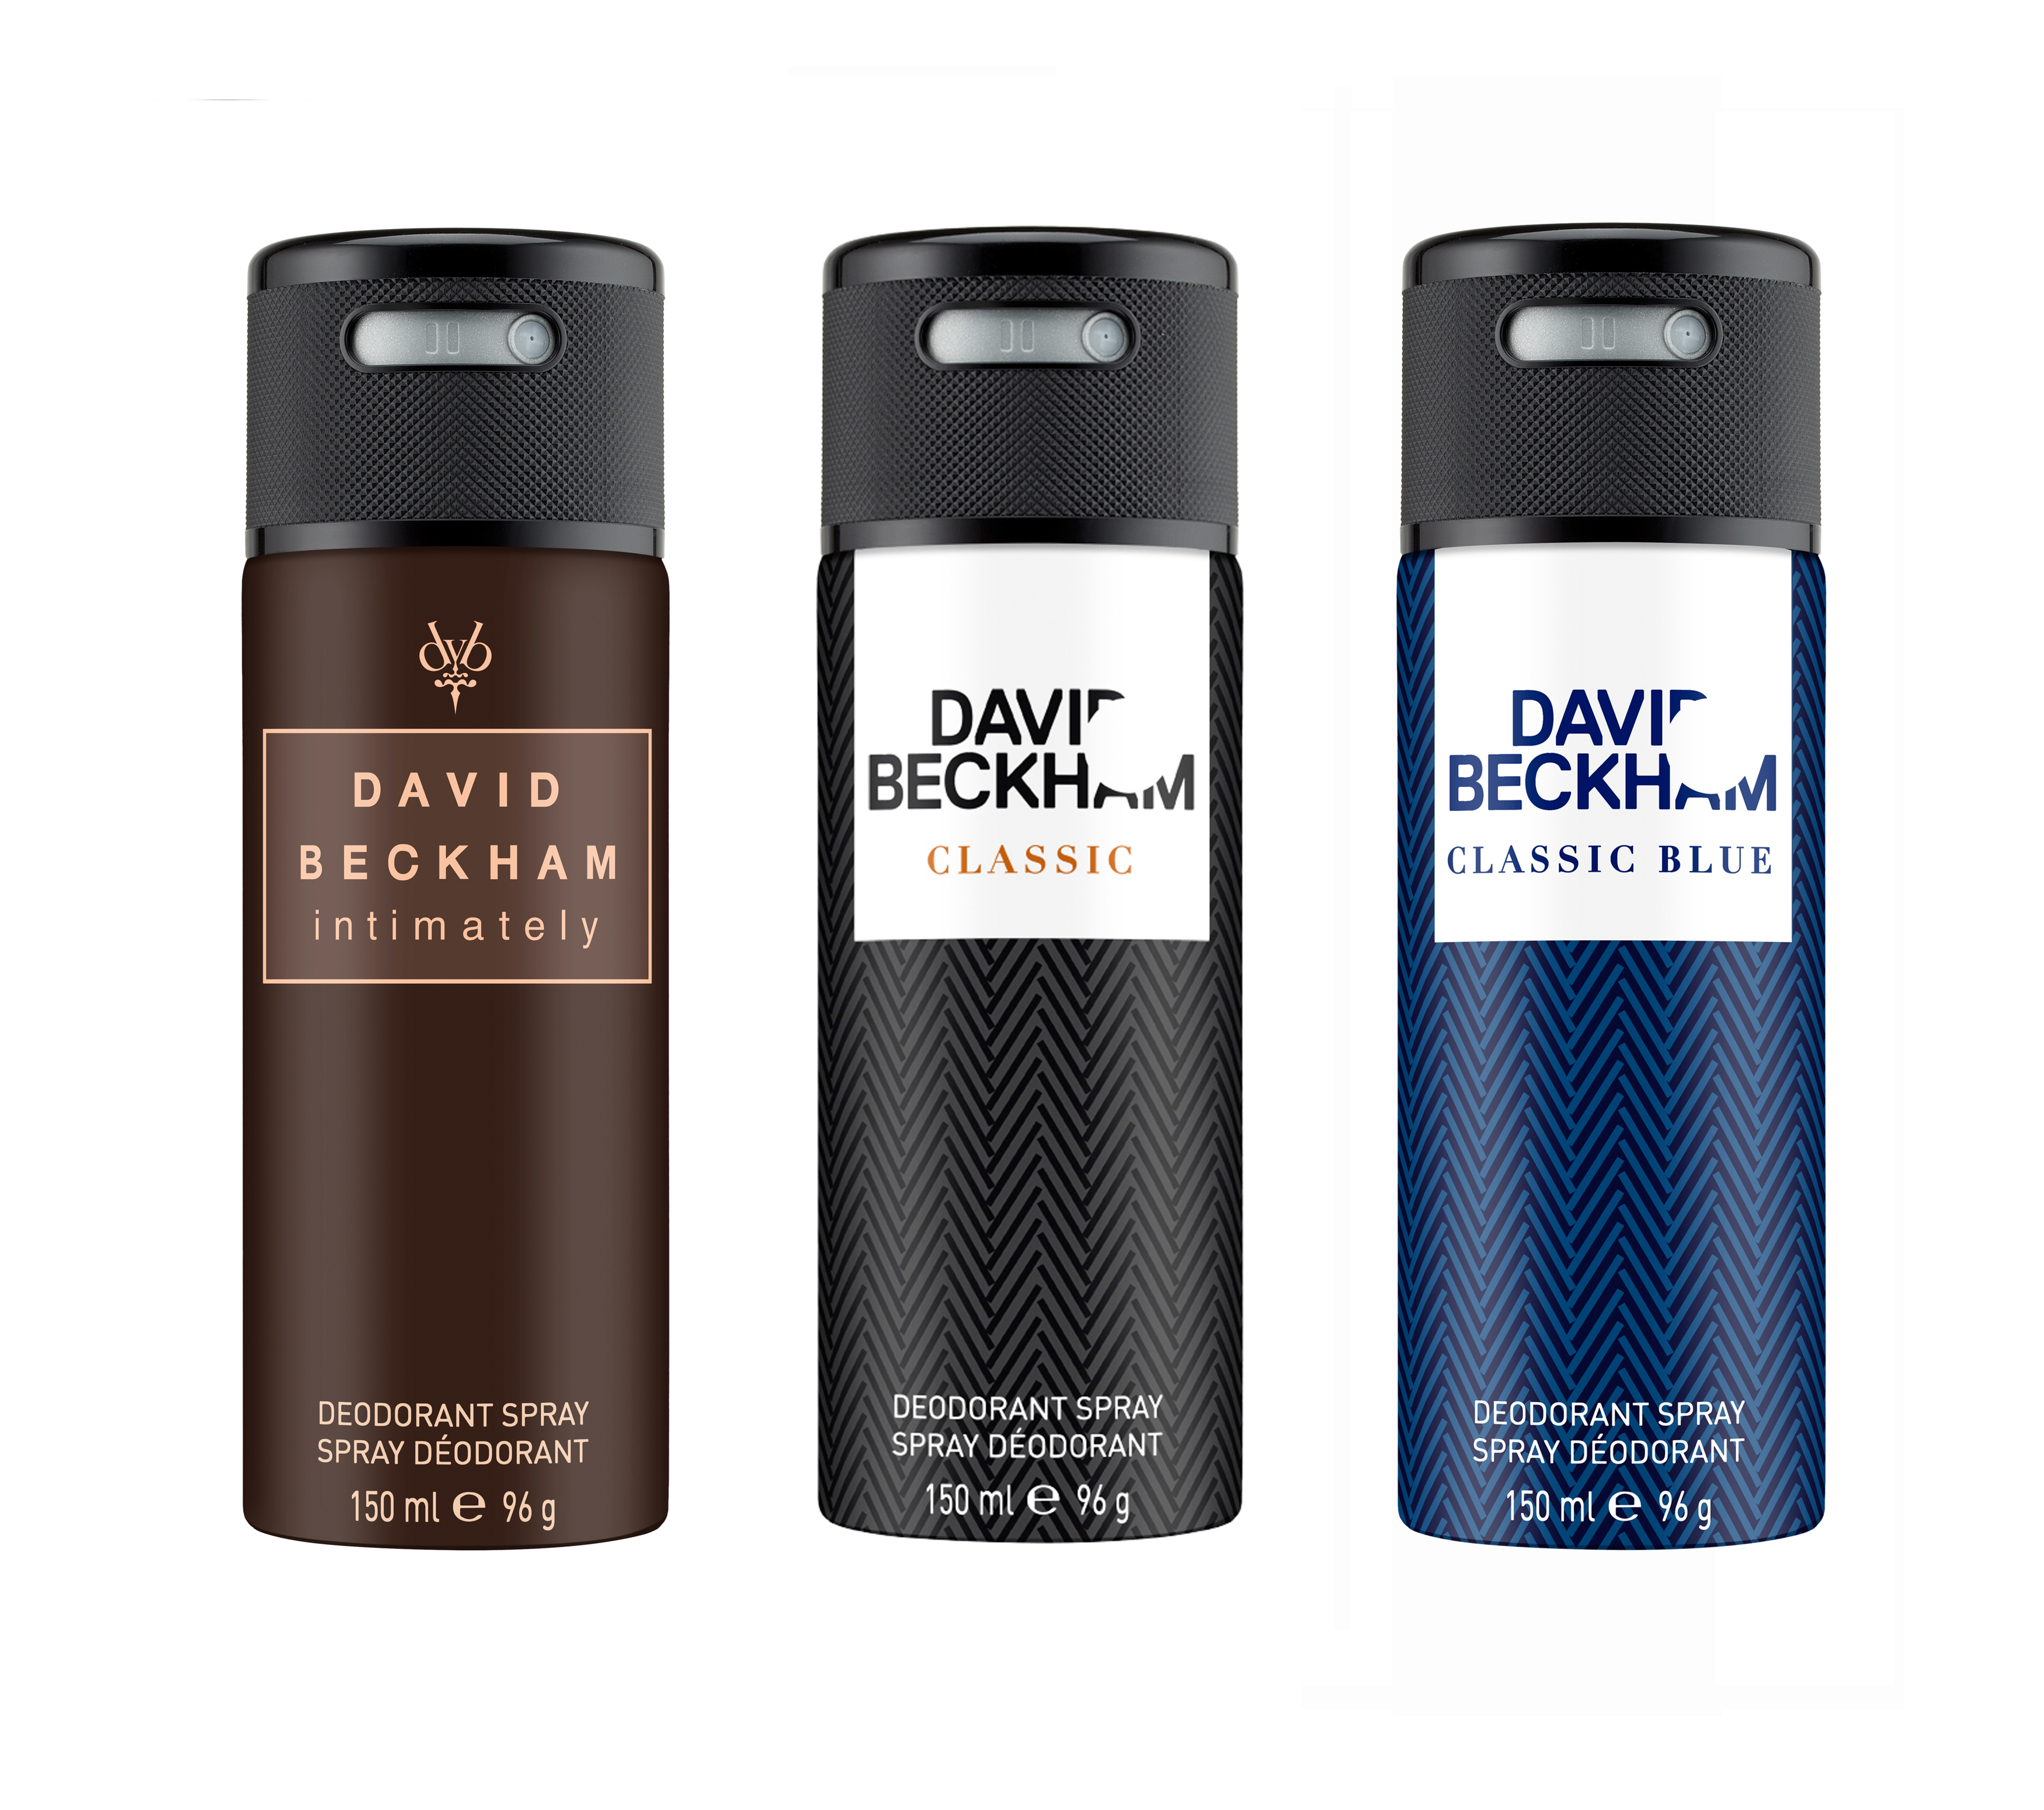 David Beckham | Classic and Classic Blue and Intimately Deo Combo Set of 3